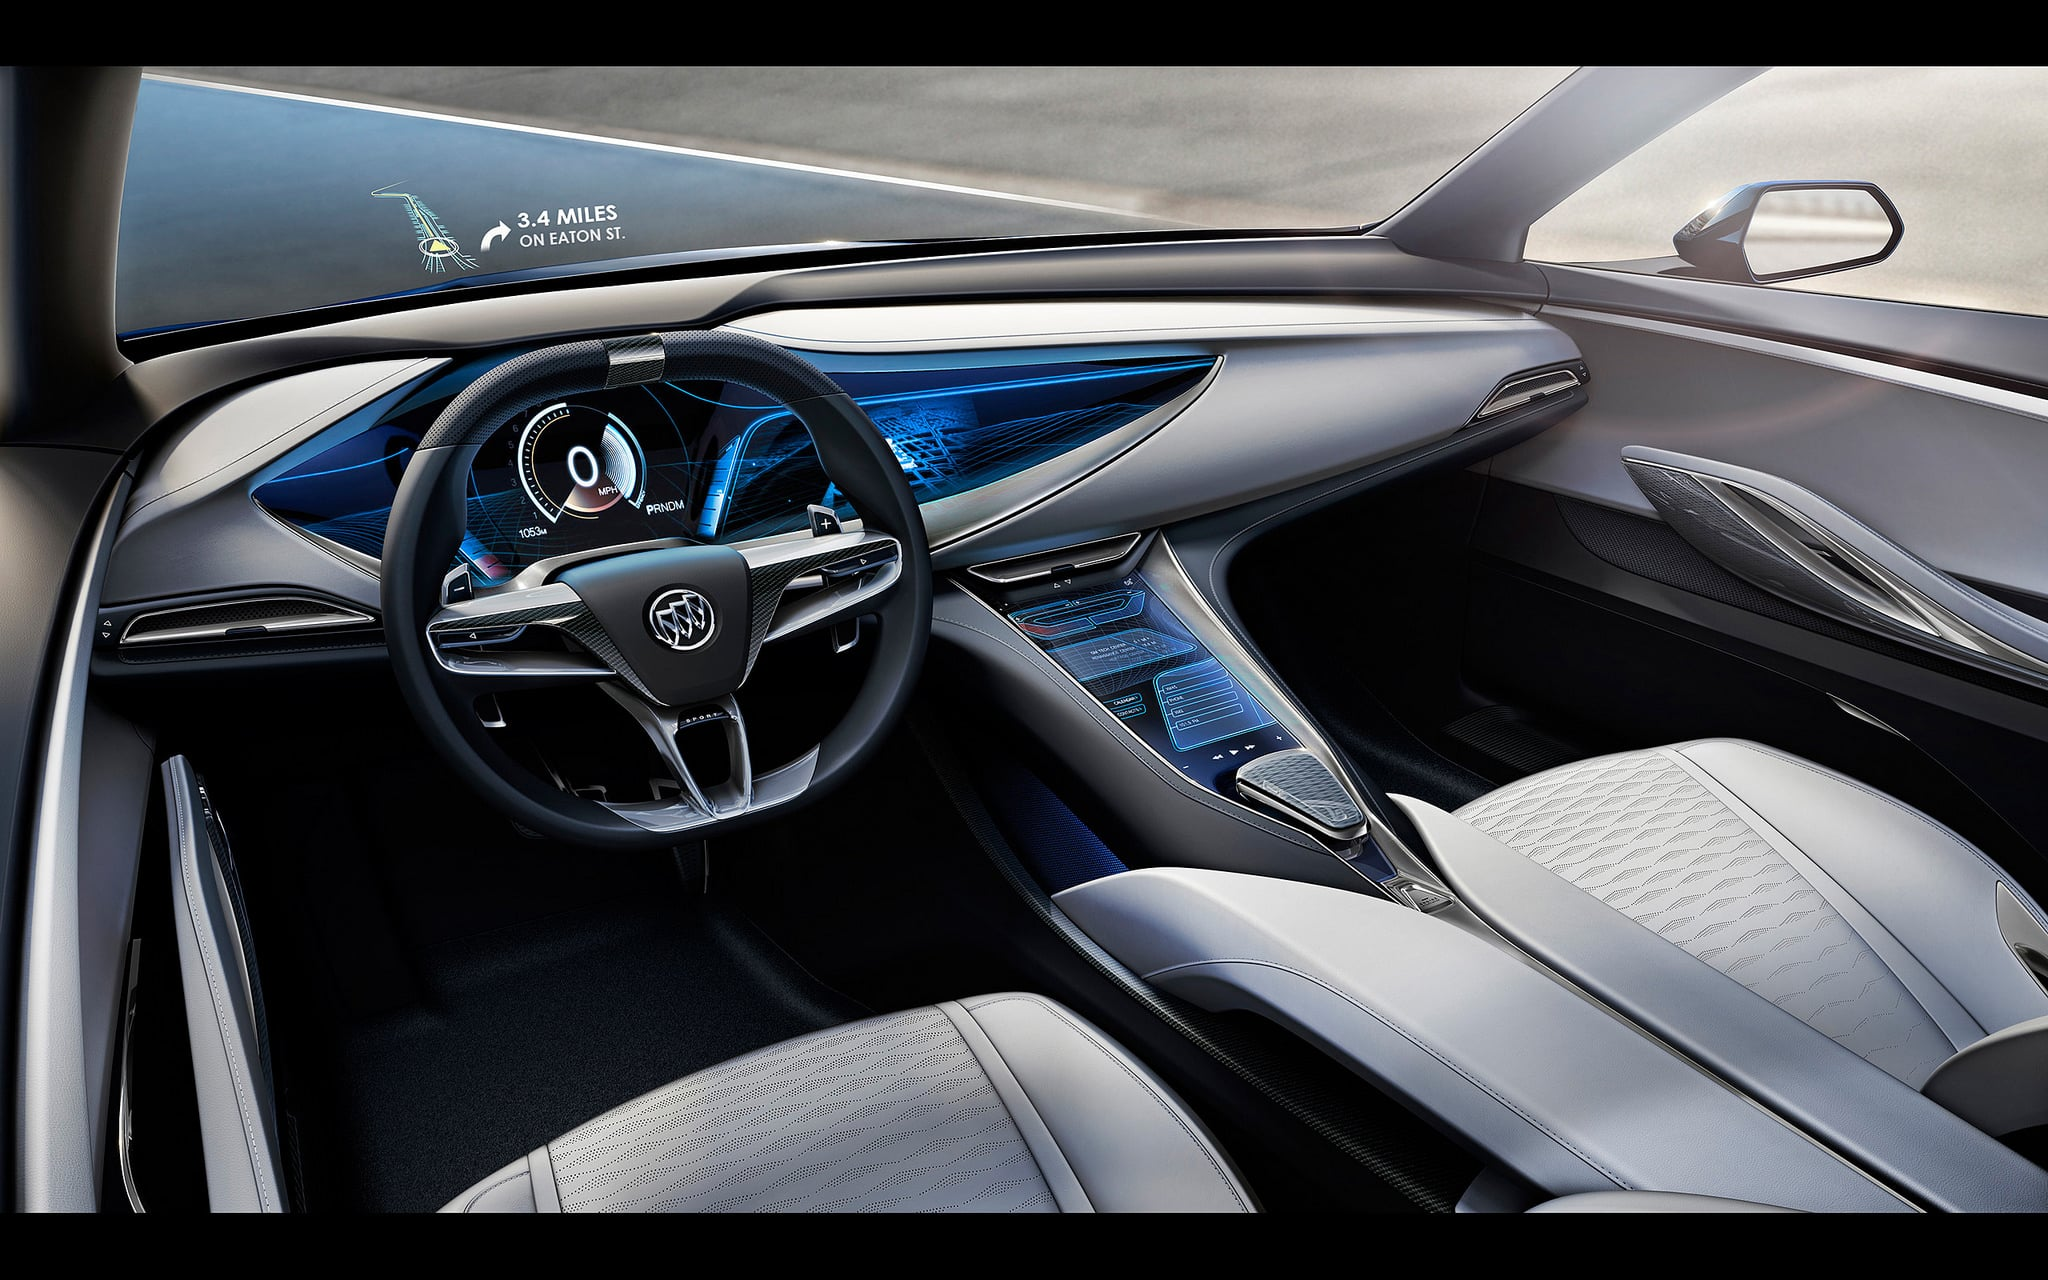 2016 Buick Avista interior High Quality wallpapers